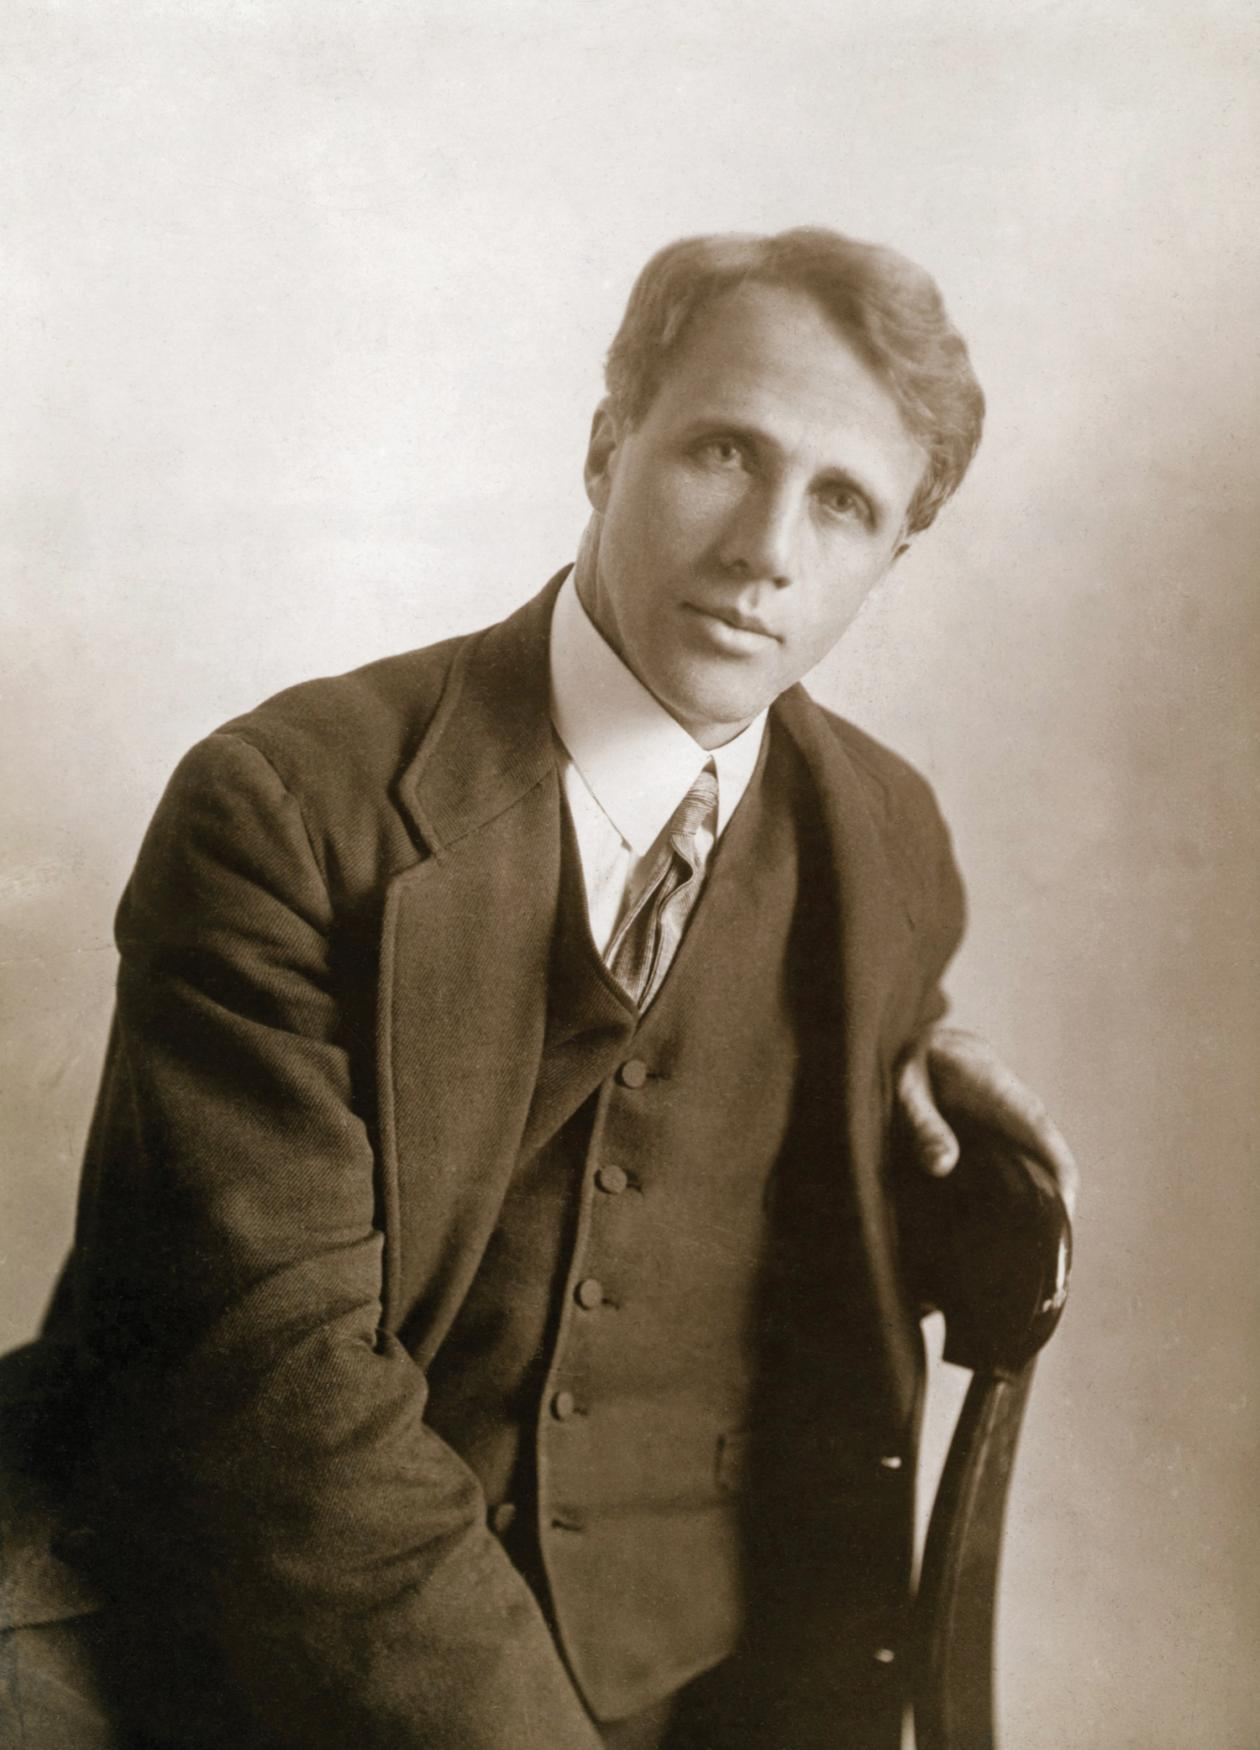 Sepia-colored photograph of a handsome Robert Frost in suit and tie.